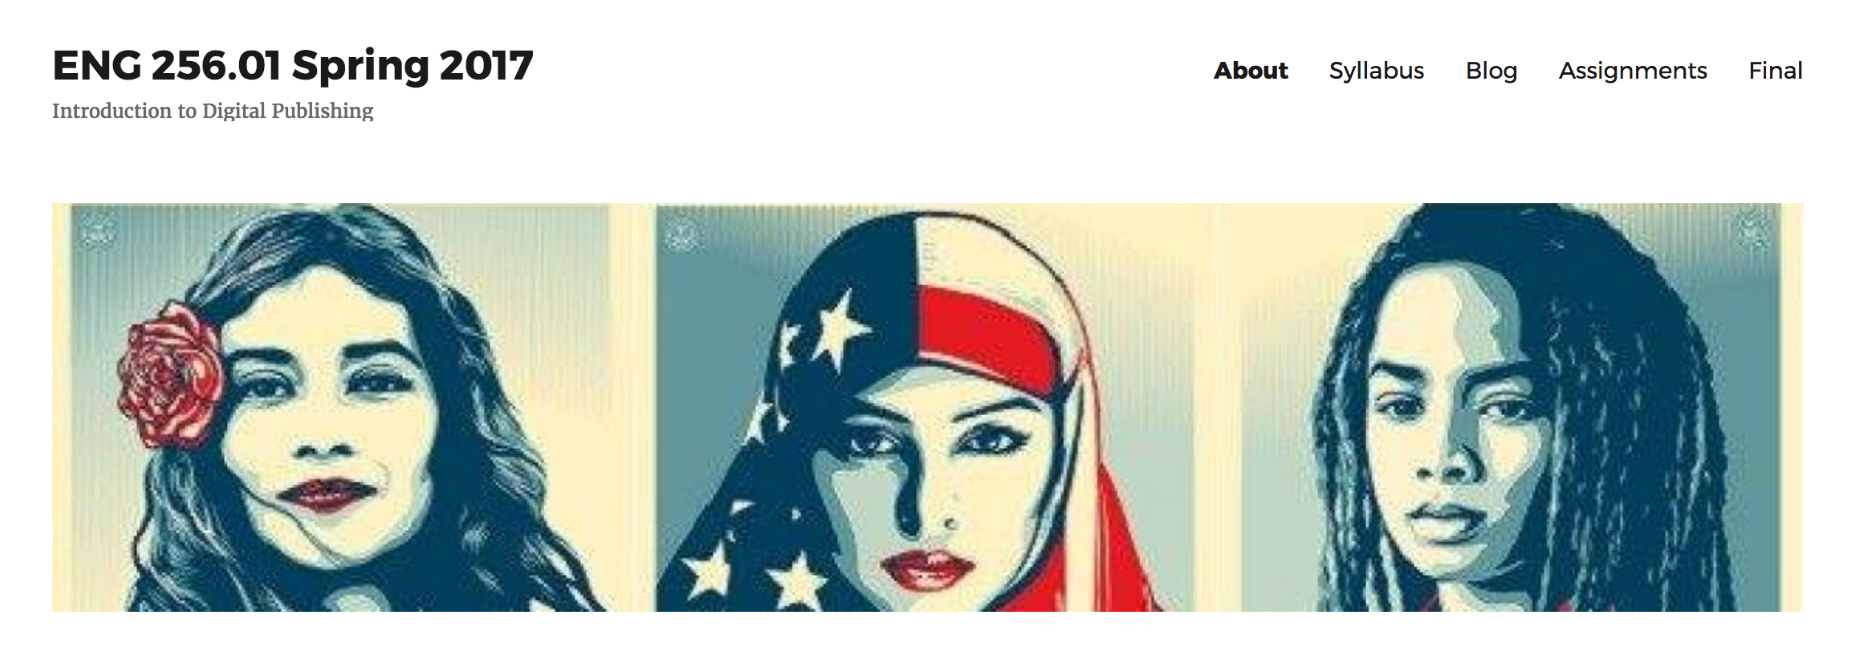 Screen shot of website front page for ENG 256.01 Spring 2017: Introduction to Digital Publishing. Features stylized images of three women — one with a bright, bold flower in her hair; one wearing a hijab styled from the American flag, and one with dreadlocks and downcast eyes